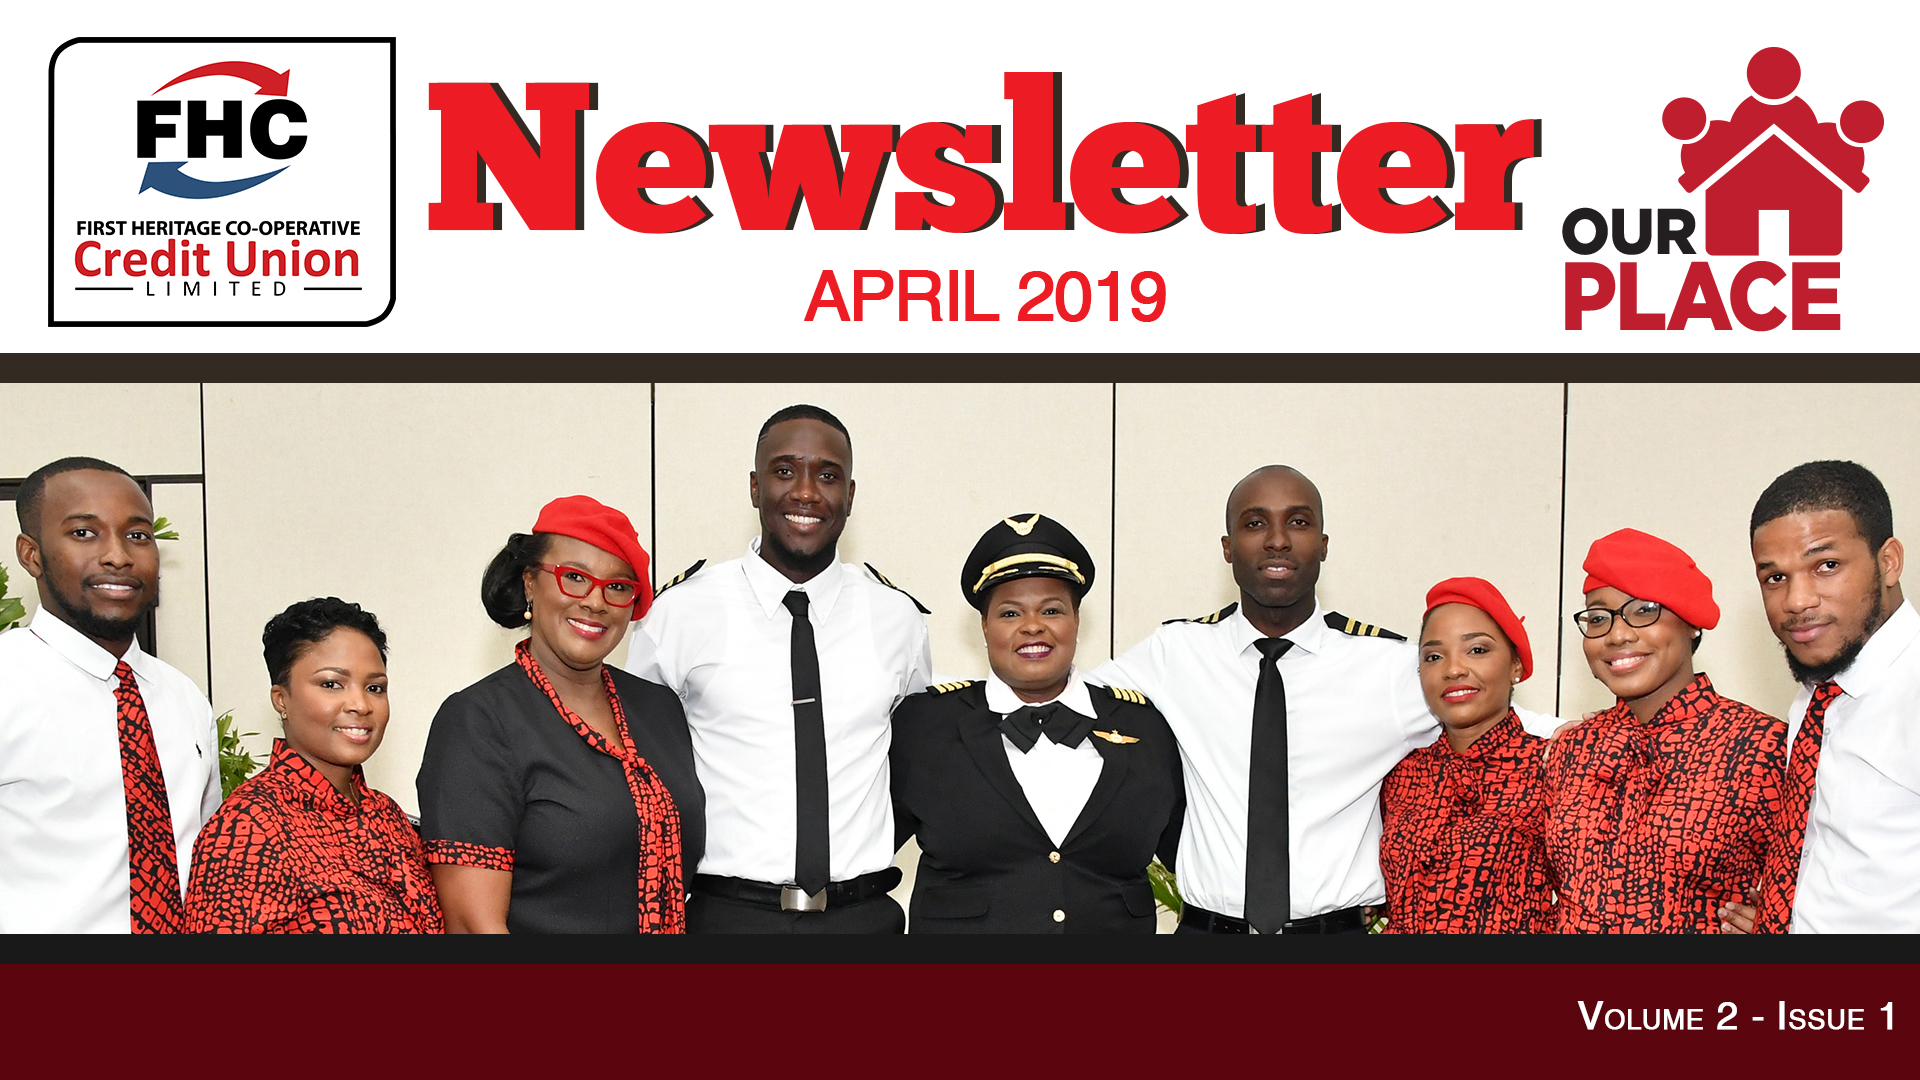 News Letter April 2019 for website